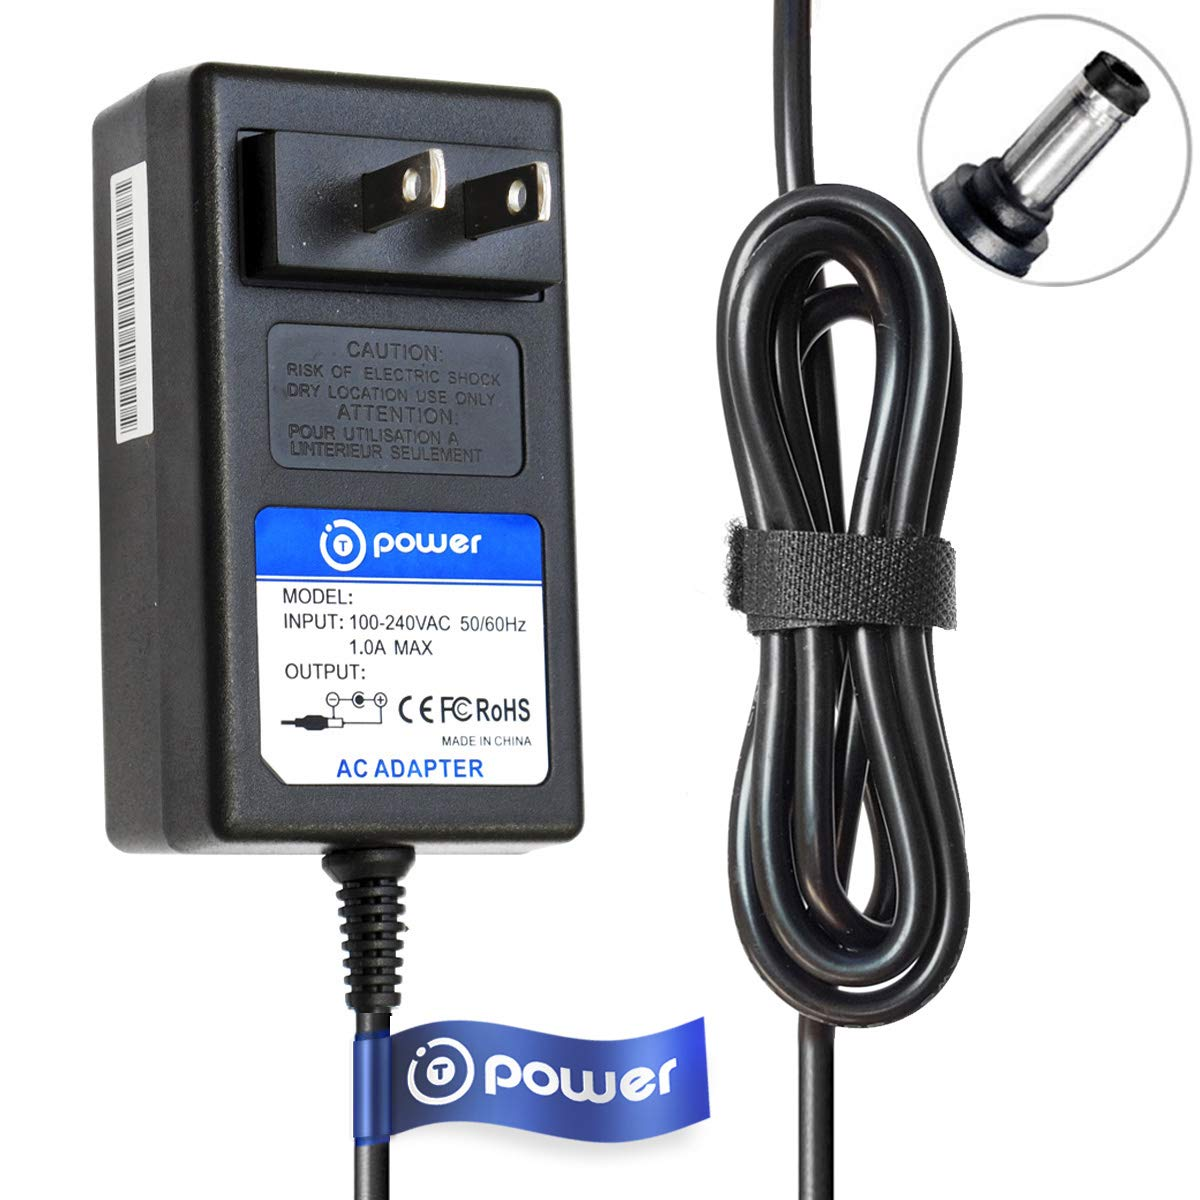 T POWER Ac Dc Adapter Charger Compatible with for ECOVACS DEEBOT N79 N79S Robotic Vacuum Cleaner DN622-DN79 Power Supply Cord